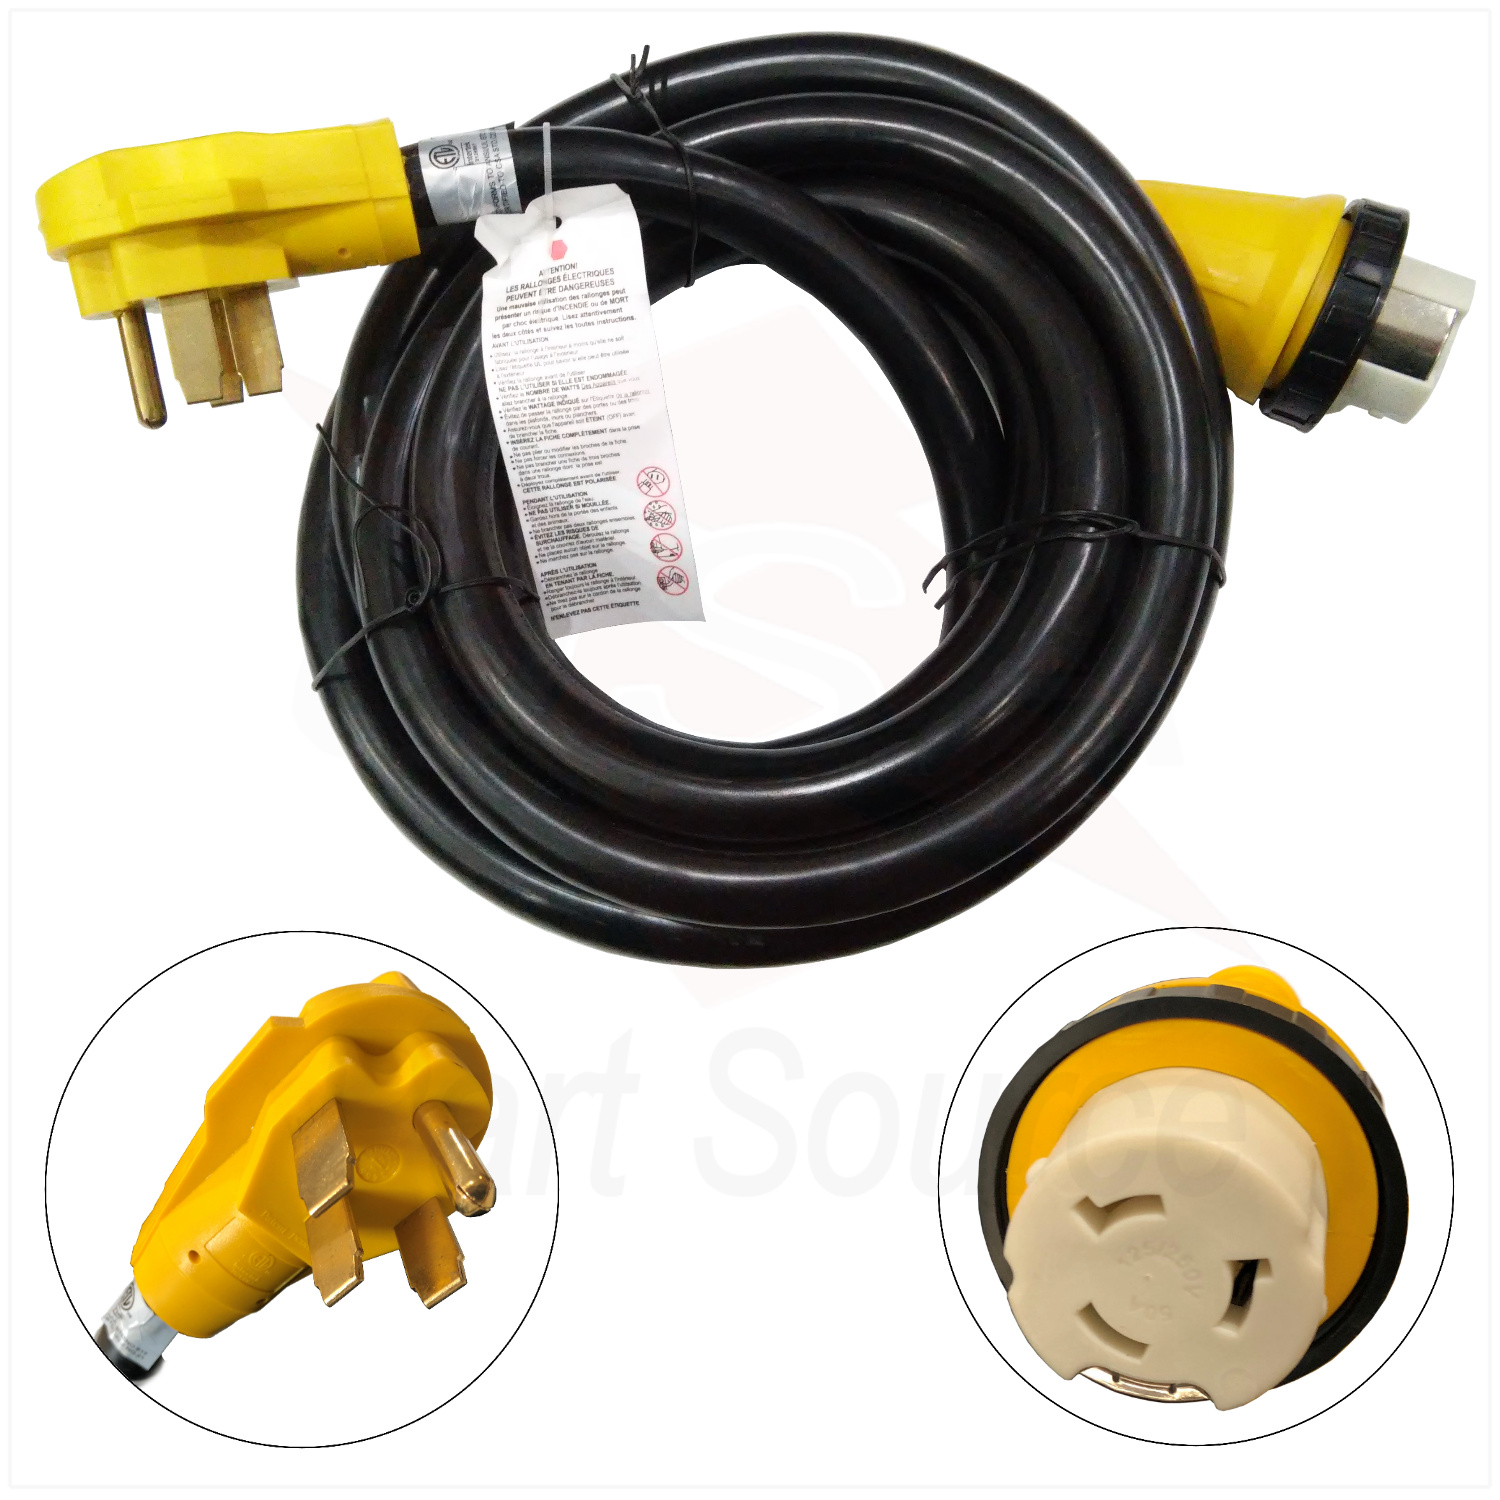 new 15 foot rv power cord adapter 15 ft 50 amp detachable cable with twist lock. Black Bedroom Furniture Sets. Home Design Ideas